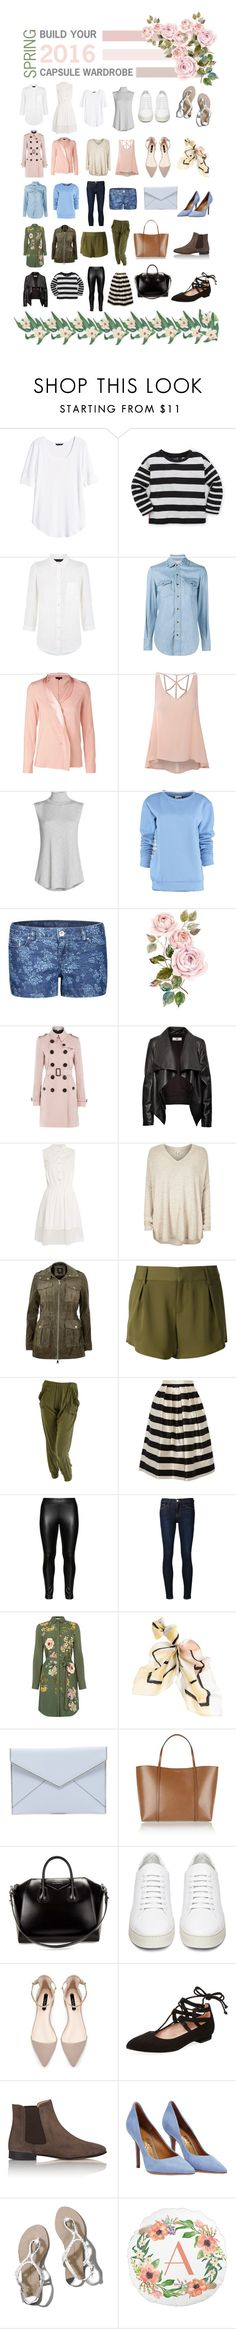 """Build Your Spring Capsule Wardrobe - 2016"" by theabstractlife ❤ liked on Polyvore featuring H&M, Ralph Lauren, Jaeger, Yves Saint Laurent, ESCADA, Glamorous, NIC+ZOE, By Sun, Dex and Burberry"